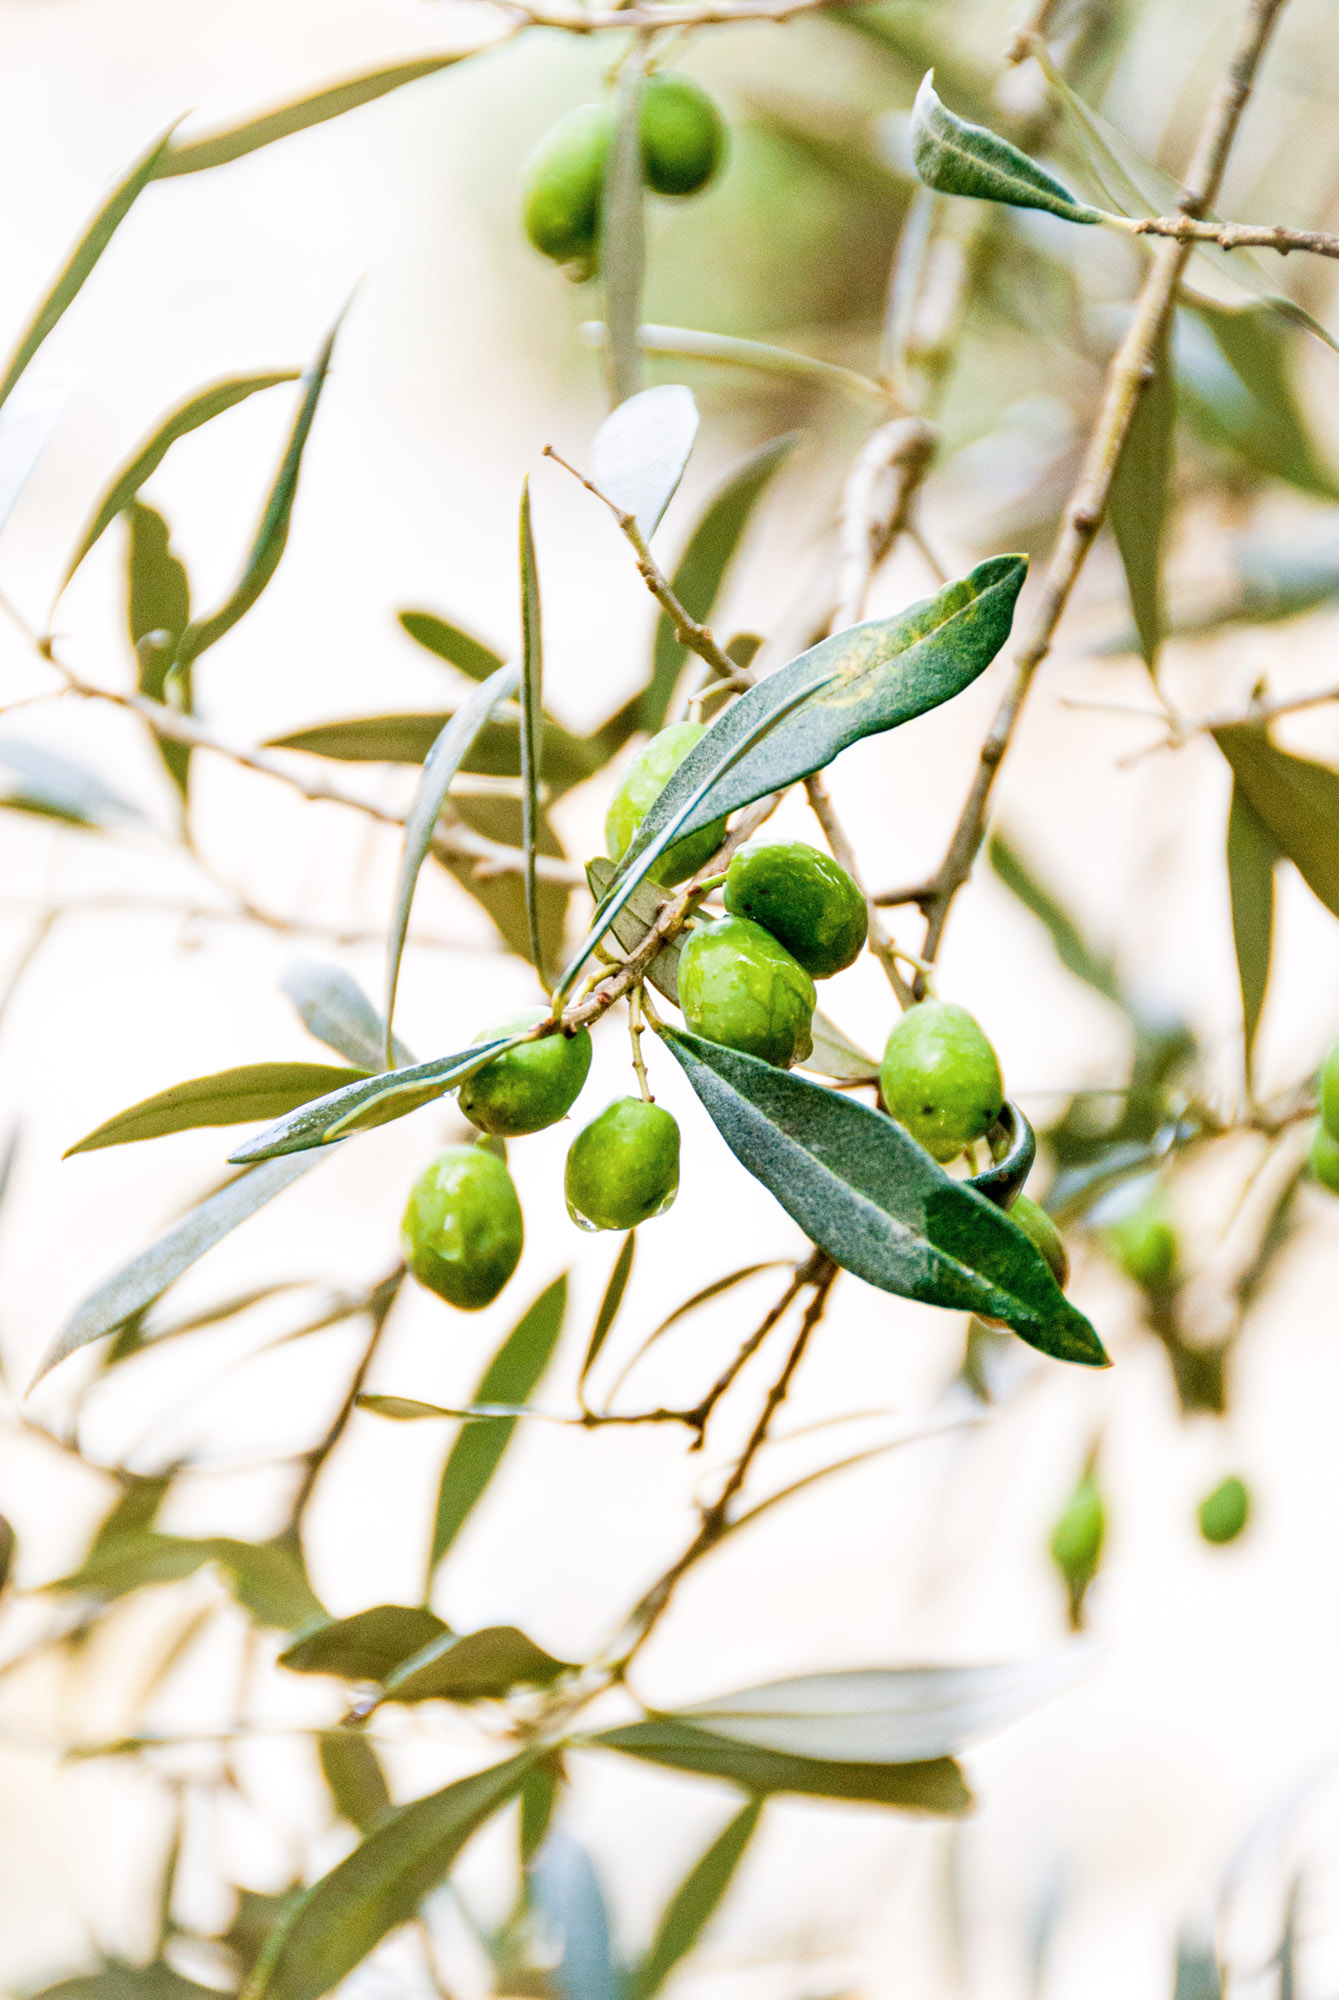 Olives - Costa Del Sol - Espagne - Janine Joles — https://unsplash.com/photos/-8nbY8W2YEE